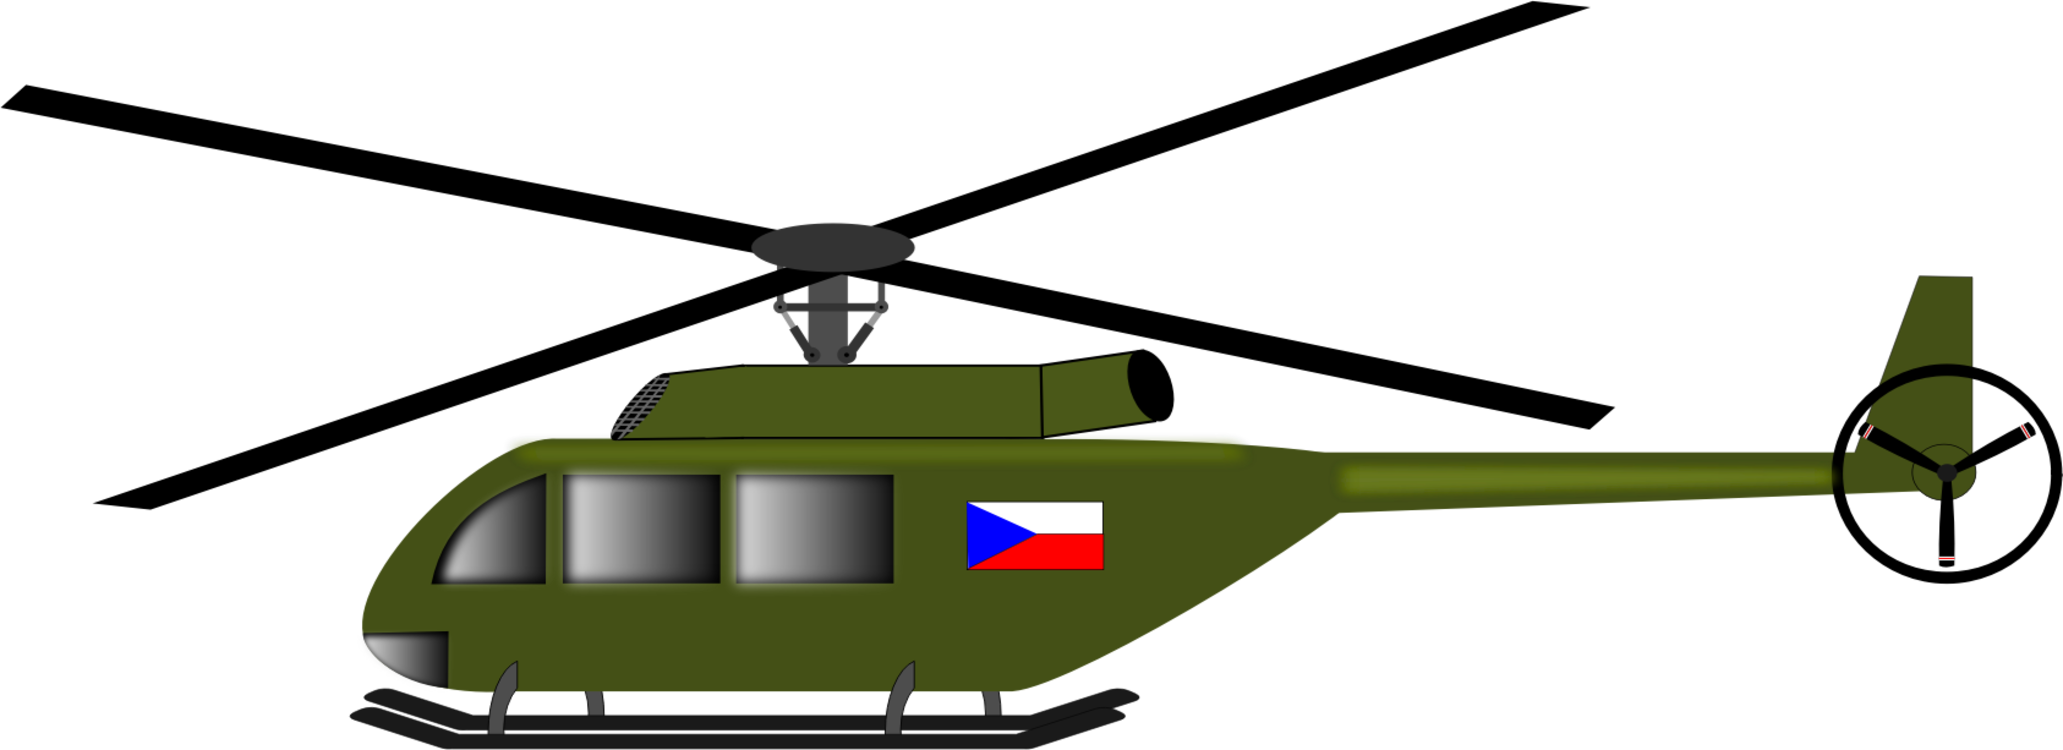 Helicopter clipart air vehicle. Military aircraft boeing ch